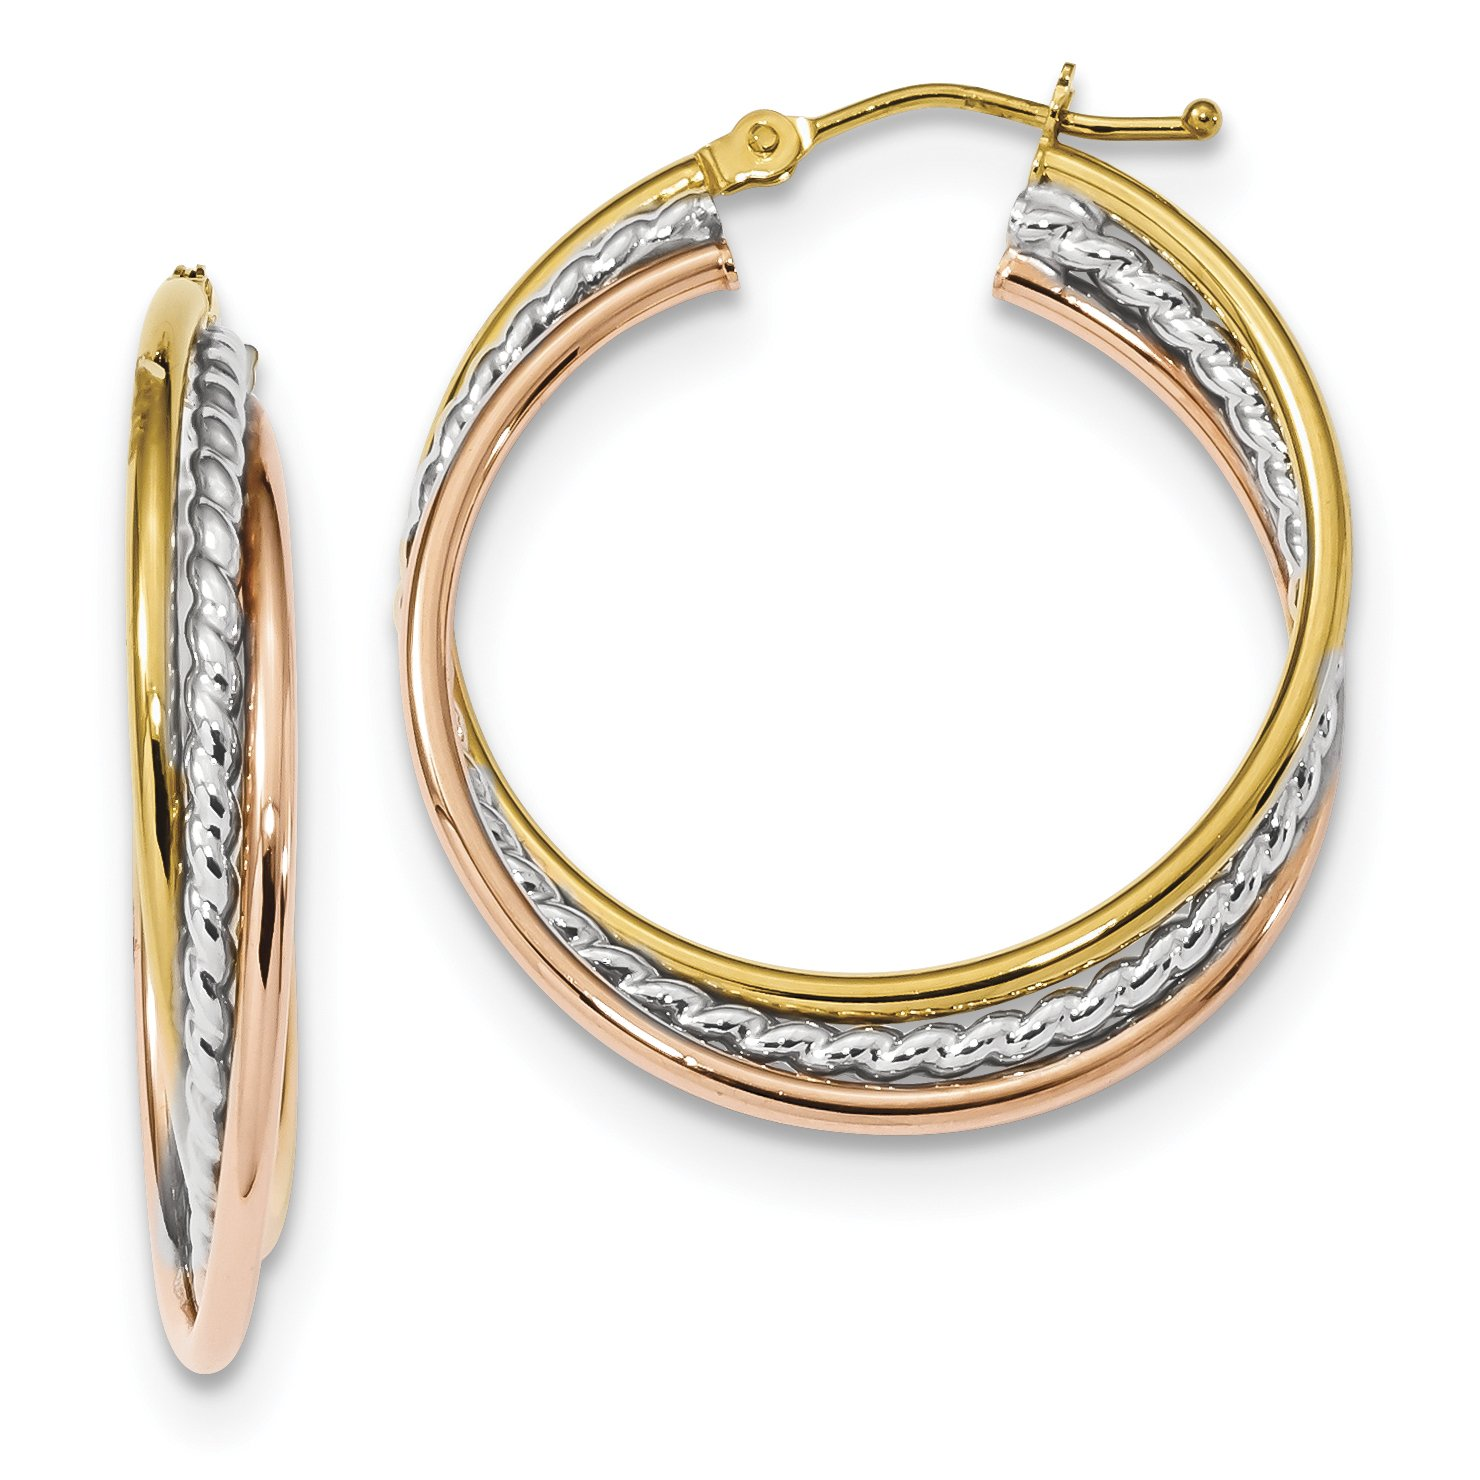 ICE CARATS 14k Tri Color Yellow White Gold Rope Twisted Hoop Earrings Ear Hoops Set Fine Jewelry Gift Set For Women Heart